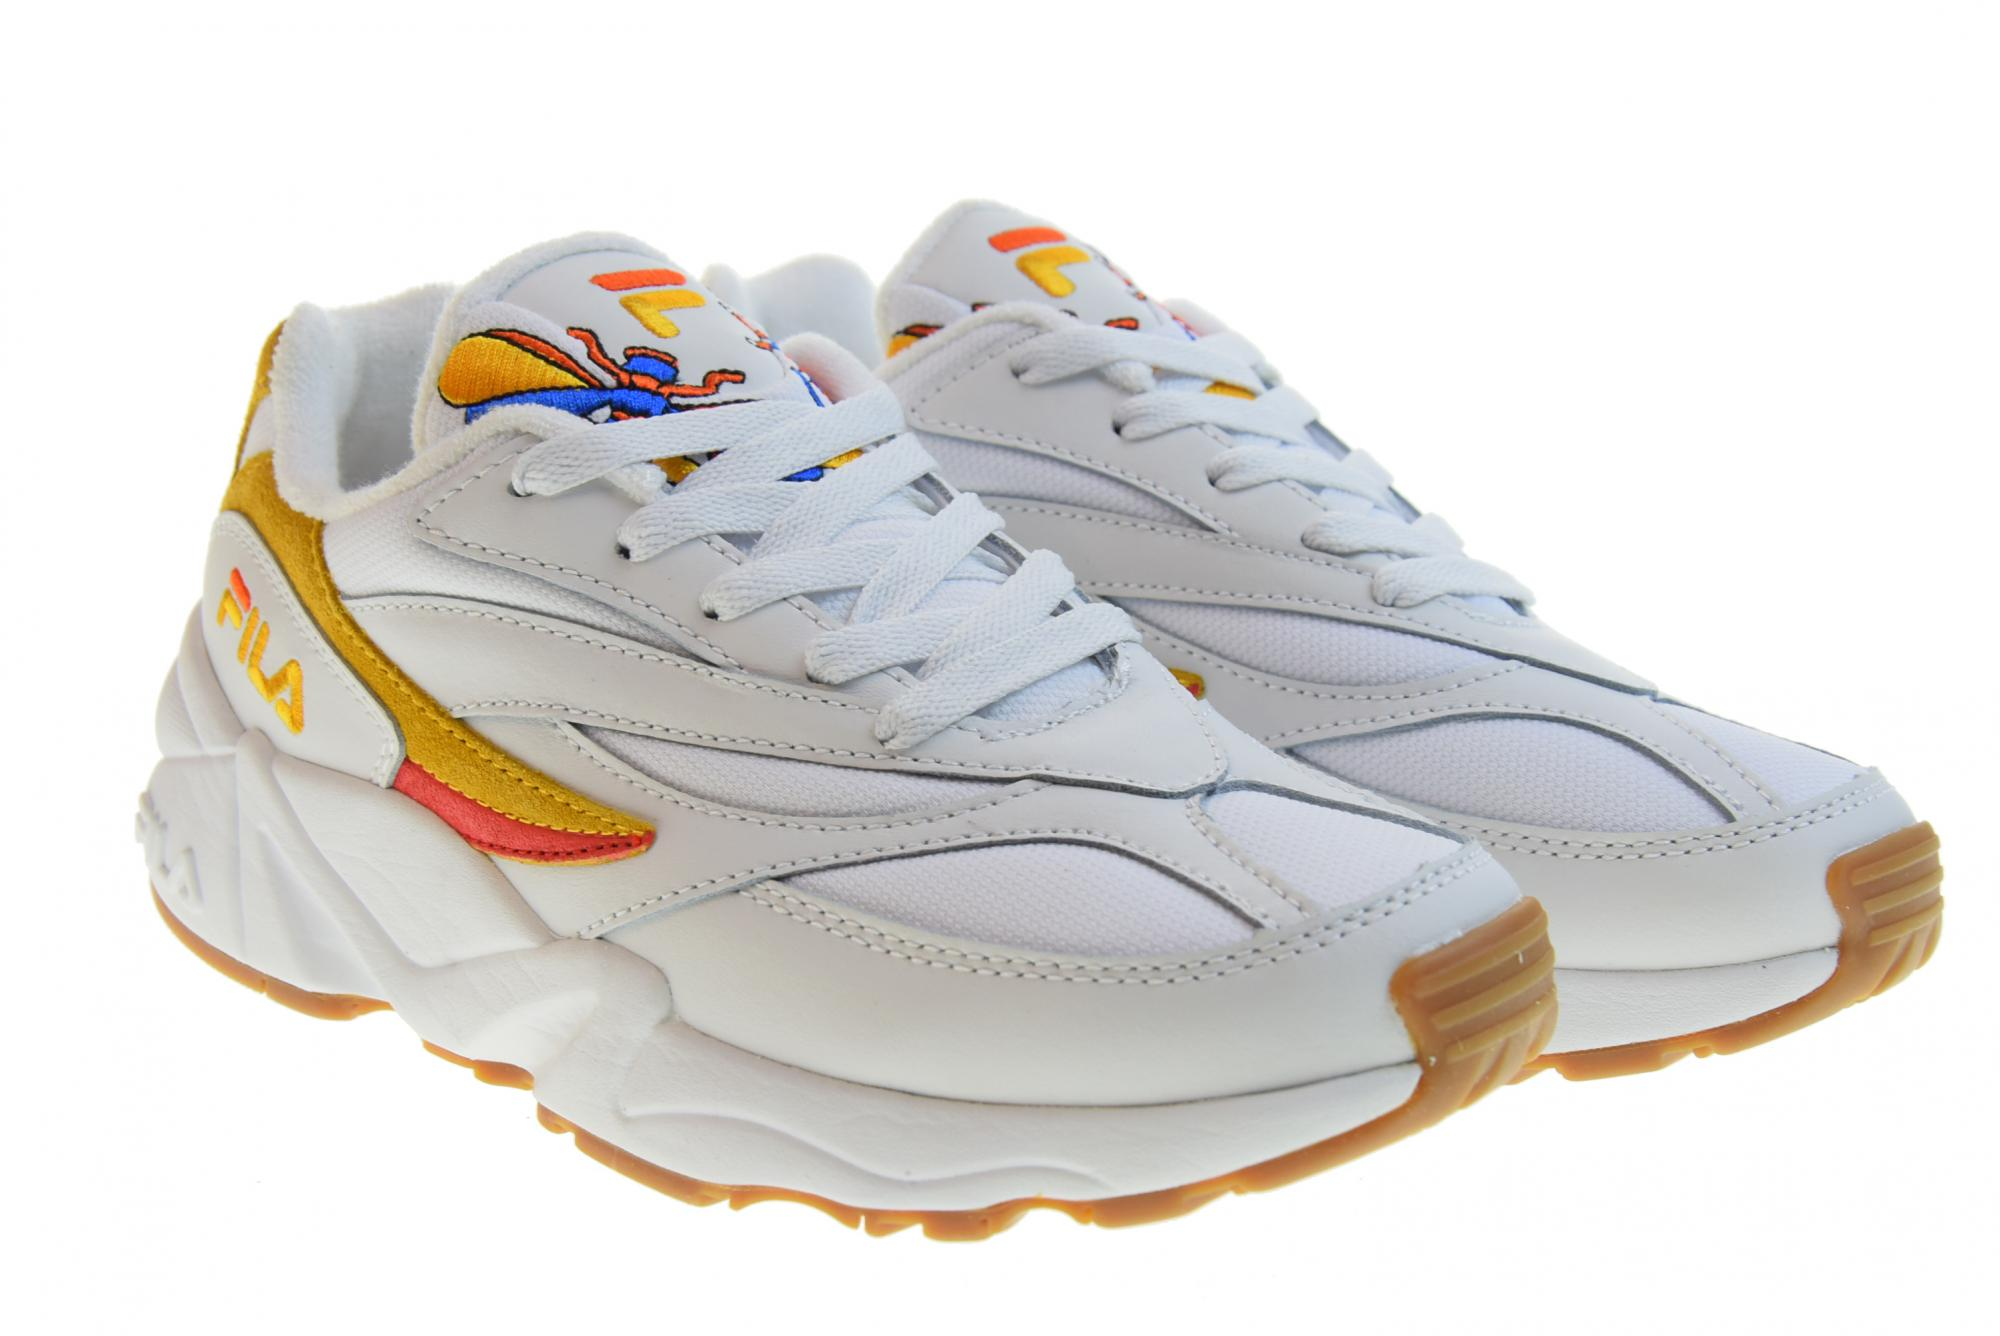 Details about Fila P19us women's shoes low sneakers 1010601.90A V94M CALABRONE LOW WMN